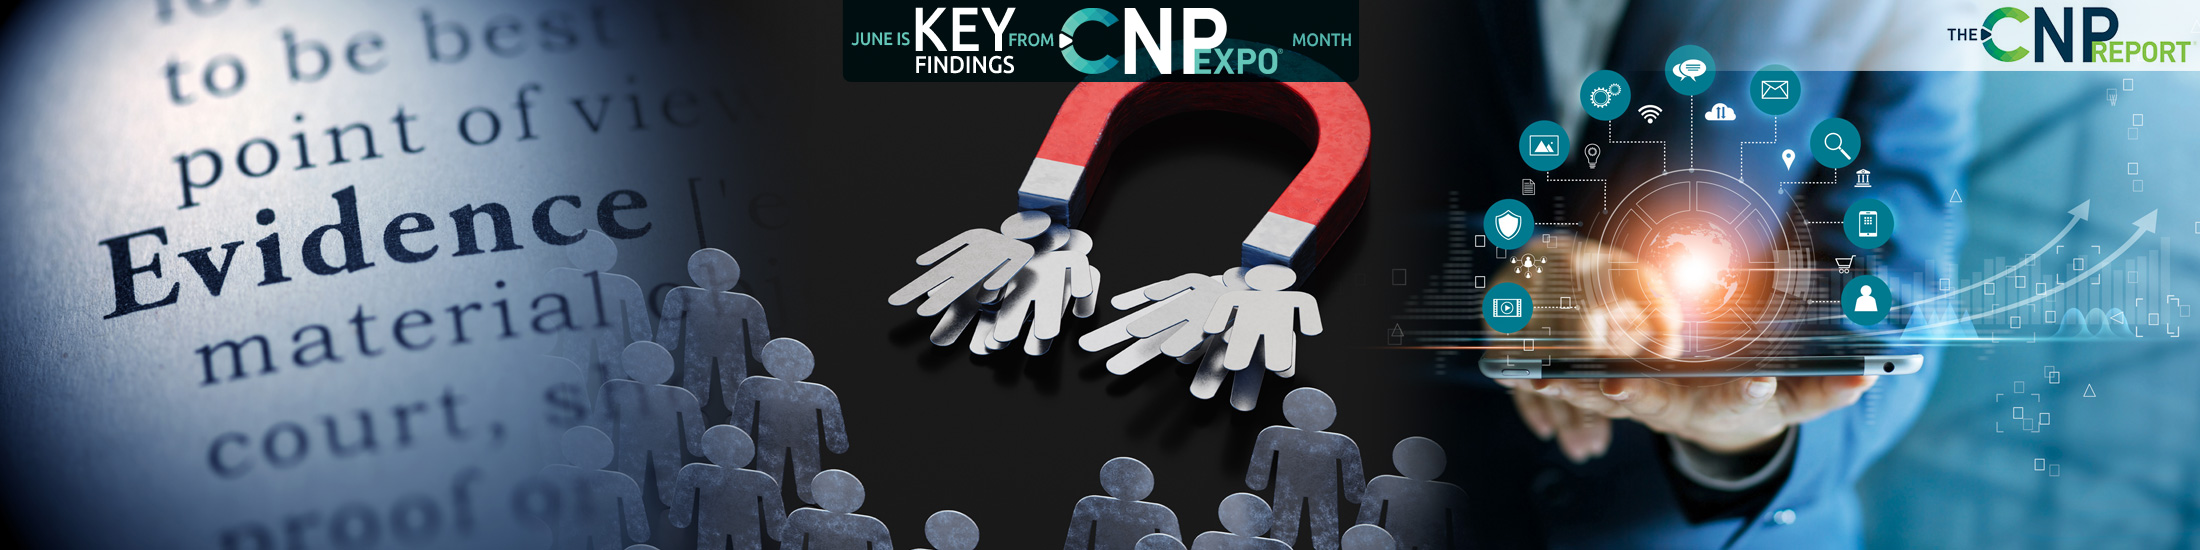 Social Engineering, Compelling Evidence and Fraud Strategy Highlight CNP Expo